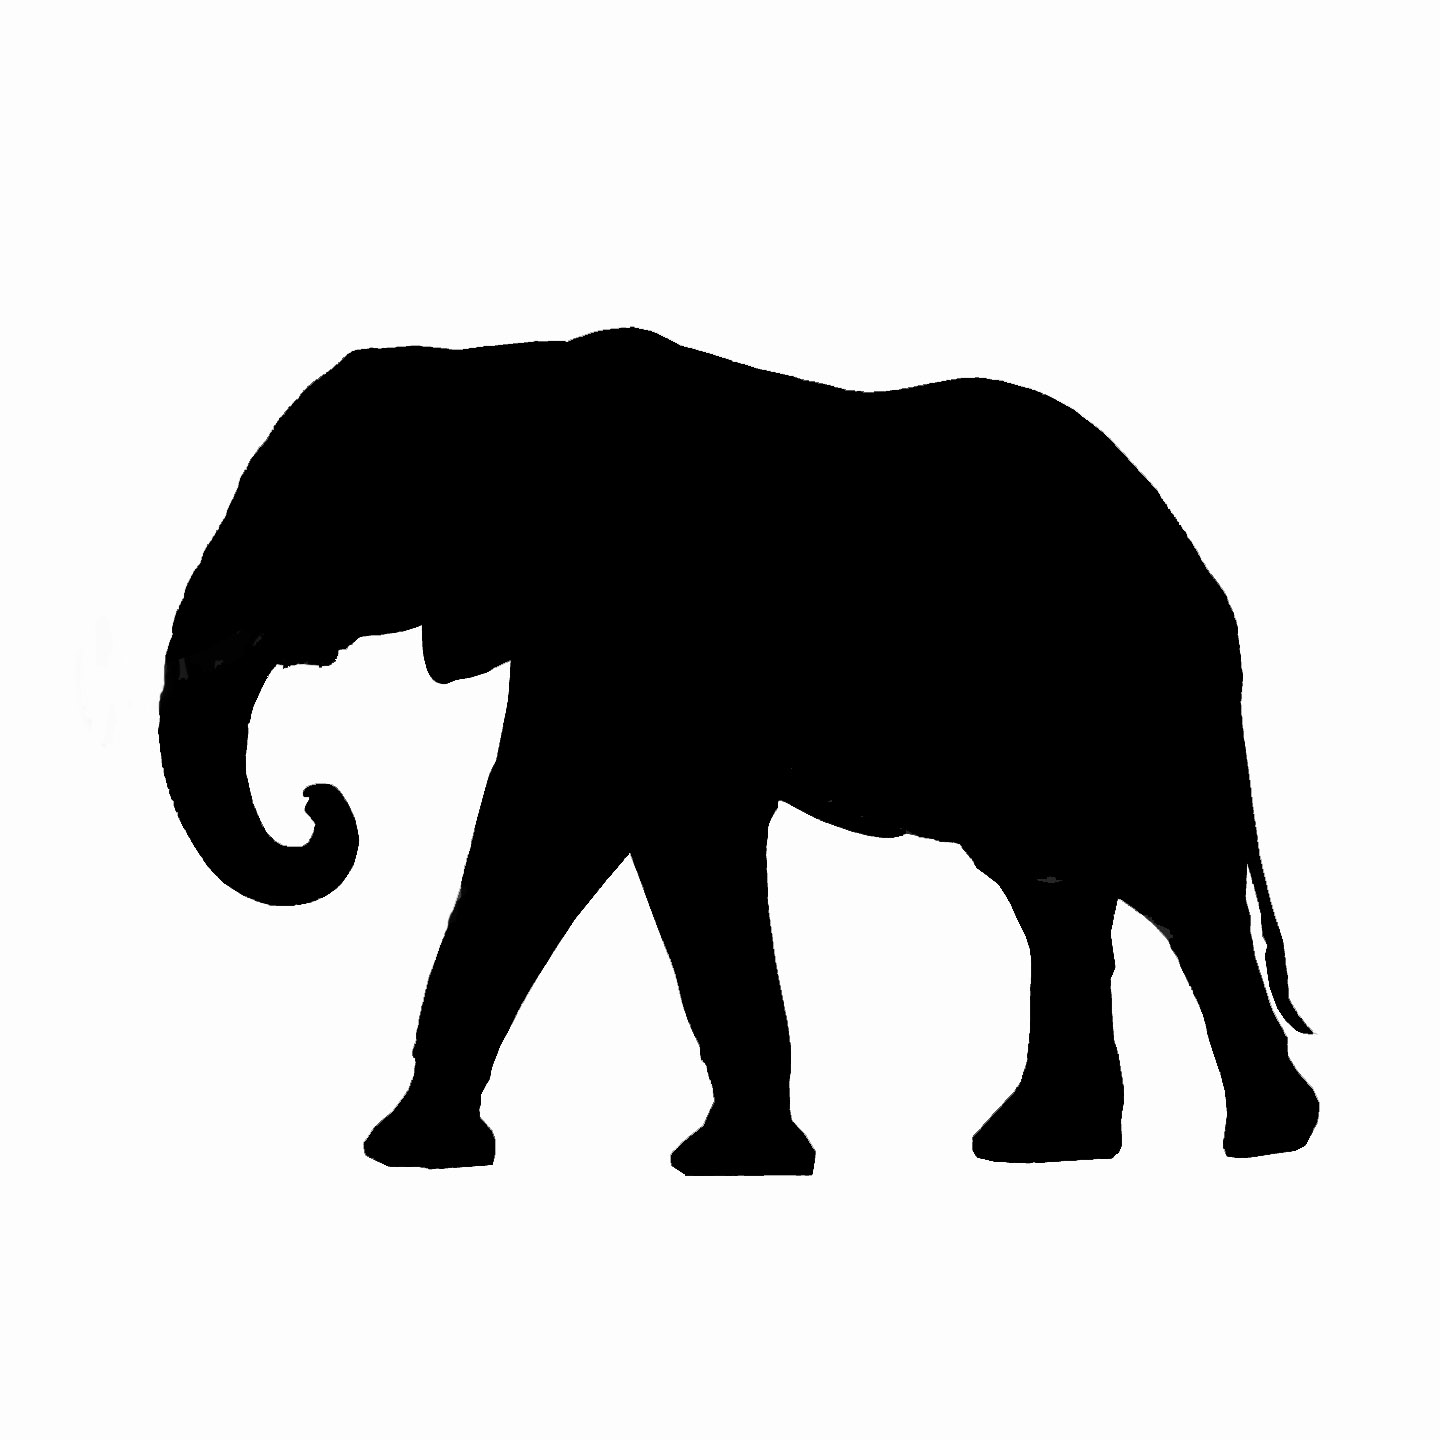 elephant clipart panda - photo #10